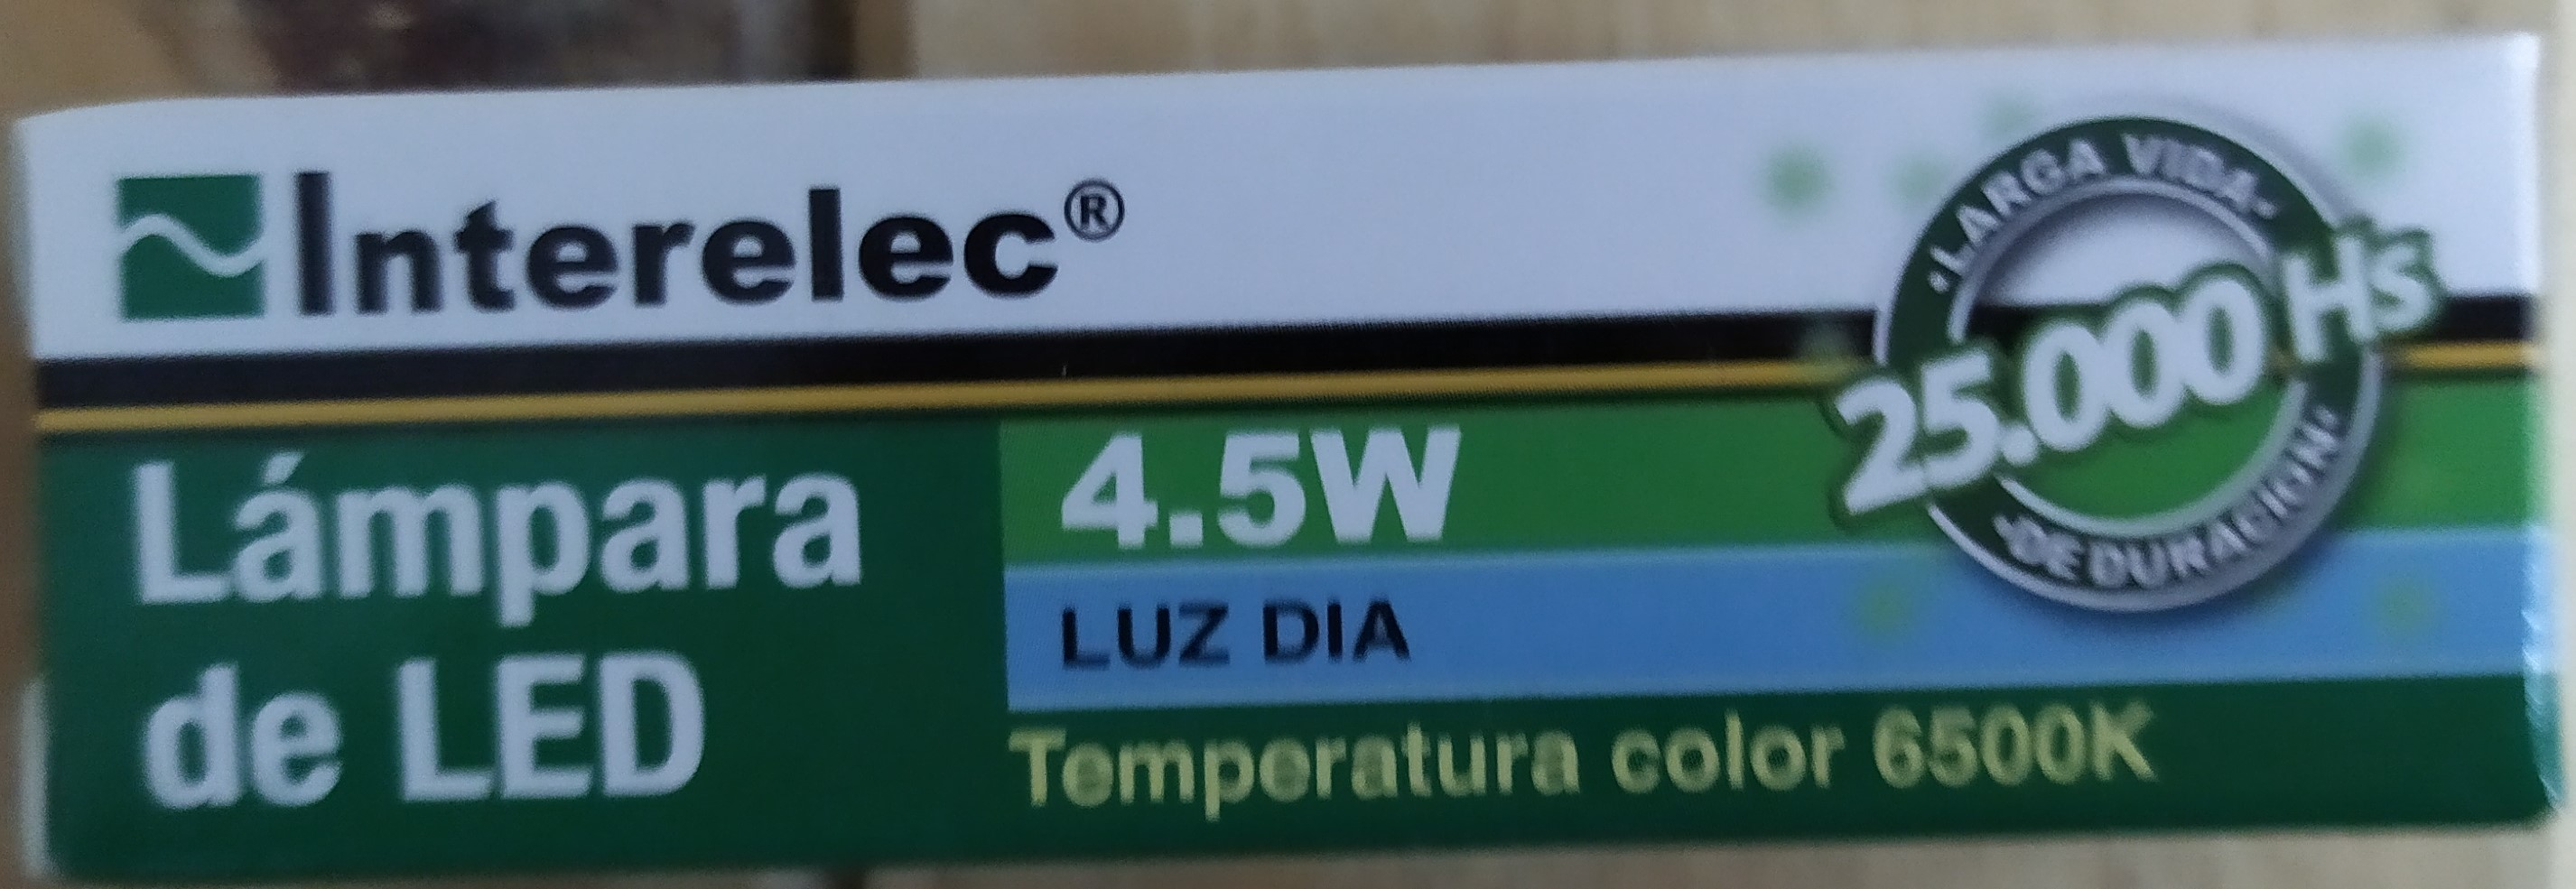 E16 LAMPARA LED G9 4.5W (6500K) LUZ FRÍA INTERELEC